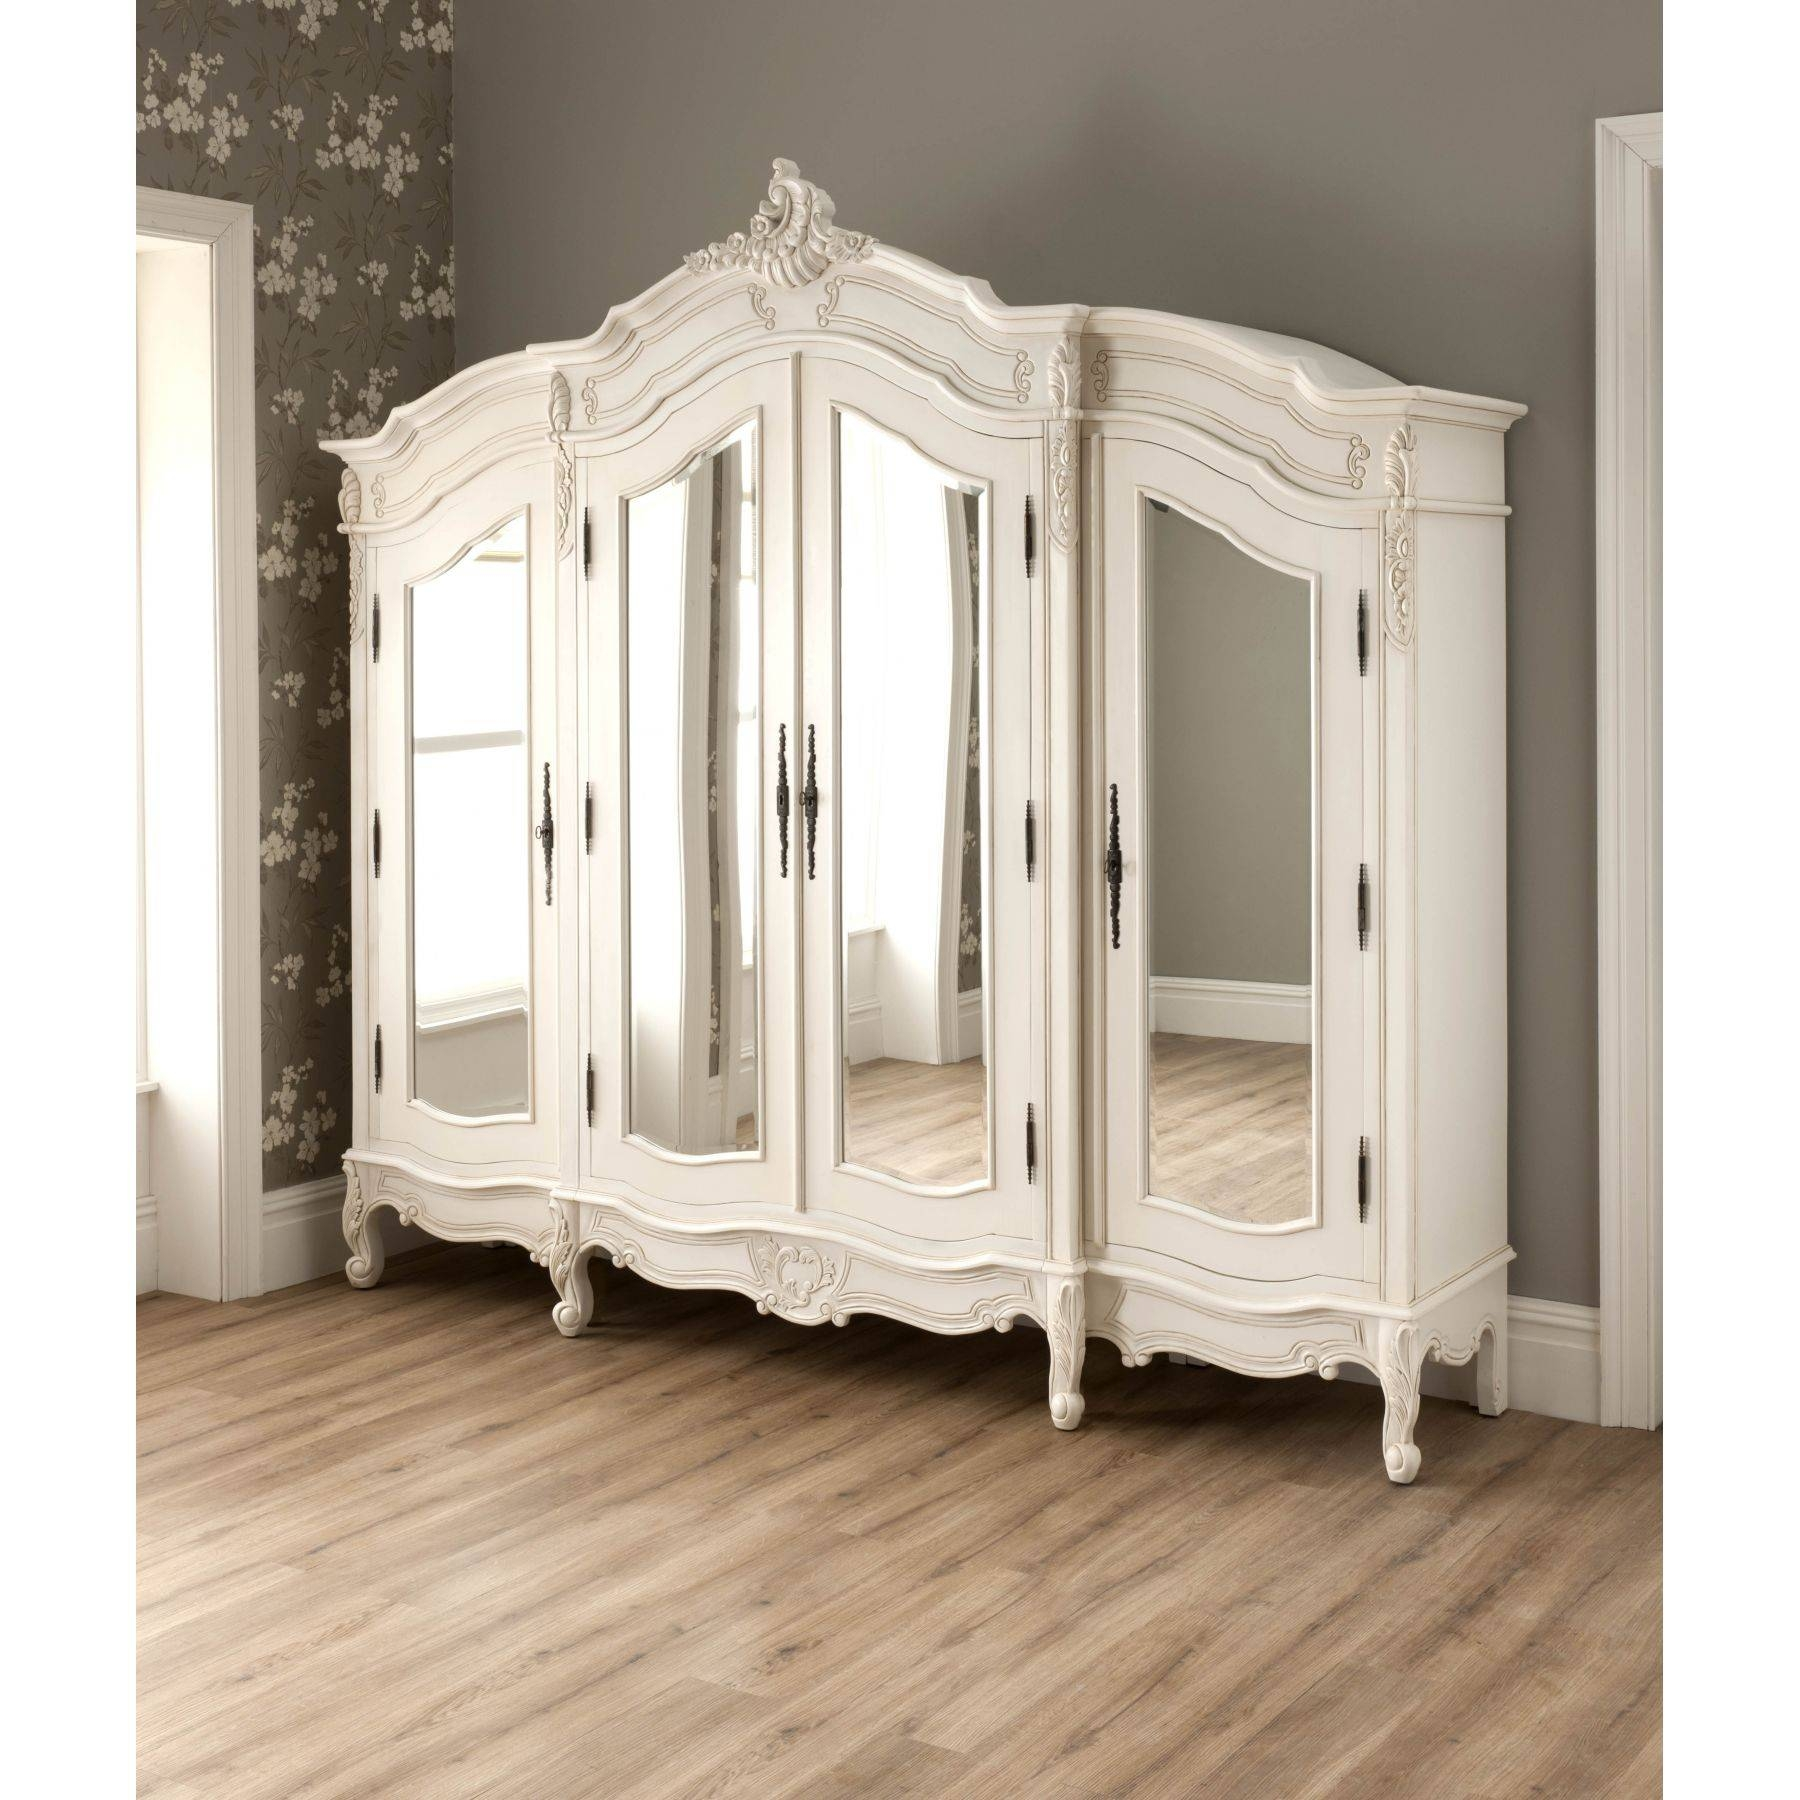 Shabby Chic Furniture Uk | French Furniture & Mirrored |Homesdirect365 regarding How to Shabby Chic a Wardrobes (Image 9 of 15)